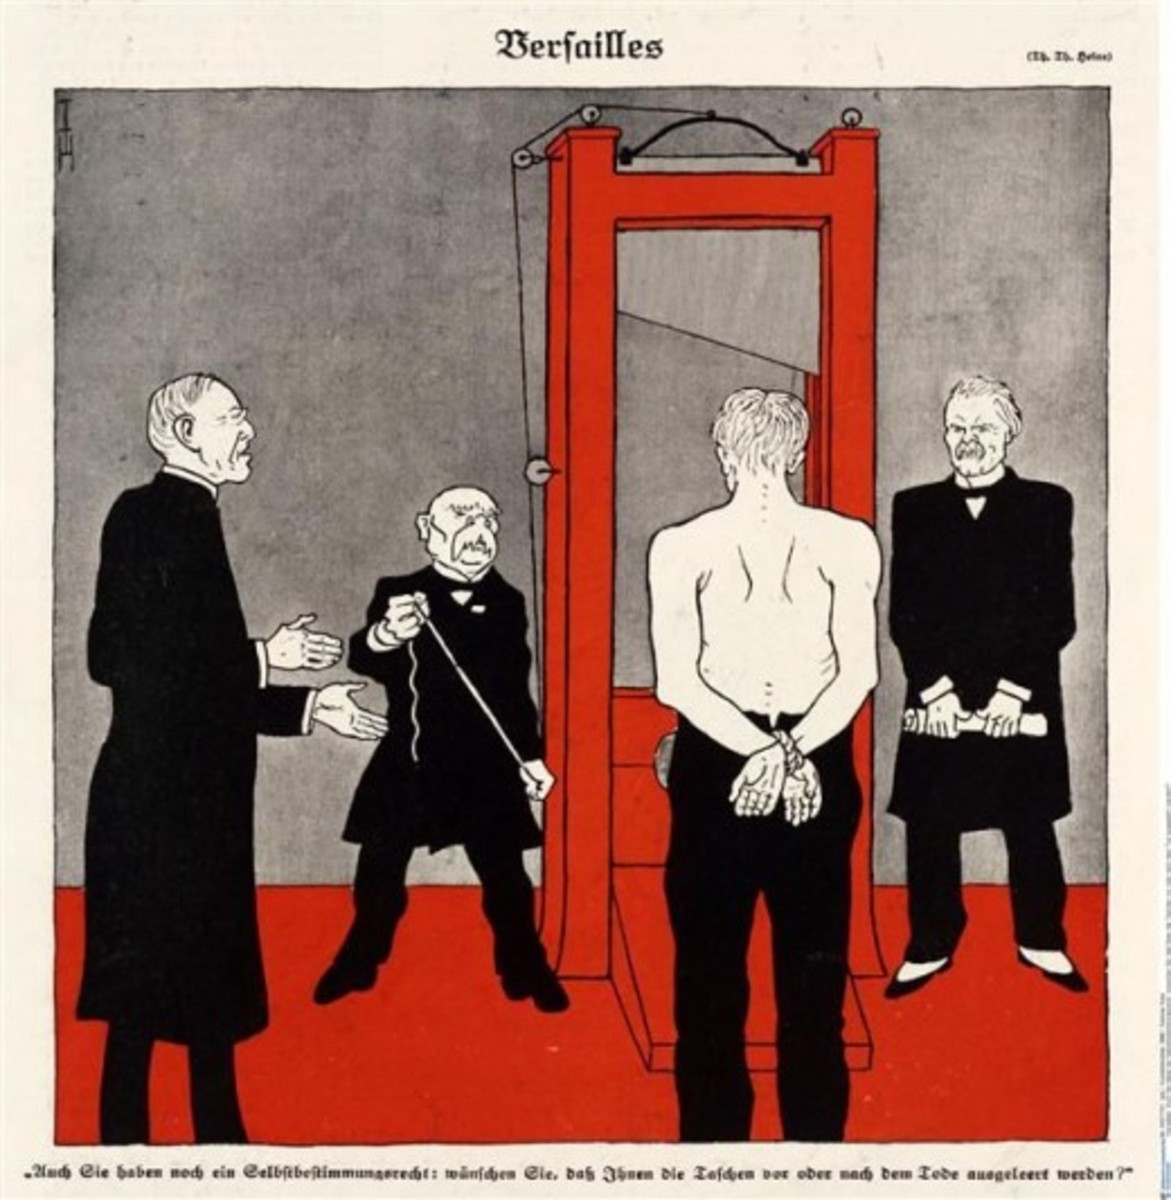 A typical German vision of the treaty: an allegorical Germany is faced with a guillotine, held by Clemenceau and watched by the British and Americans. Also painfully inaccurate.